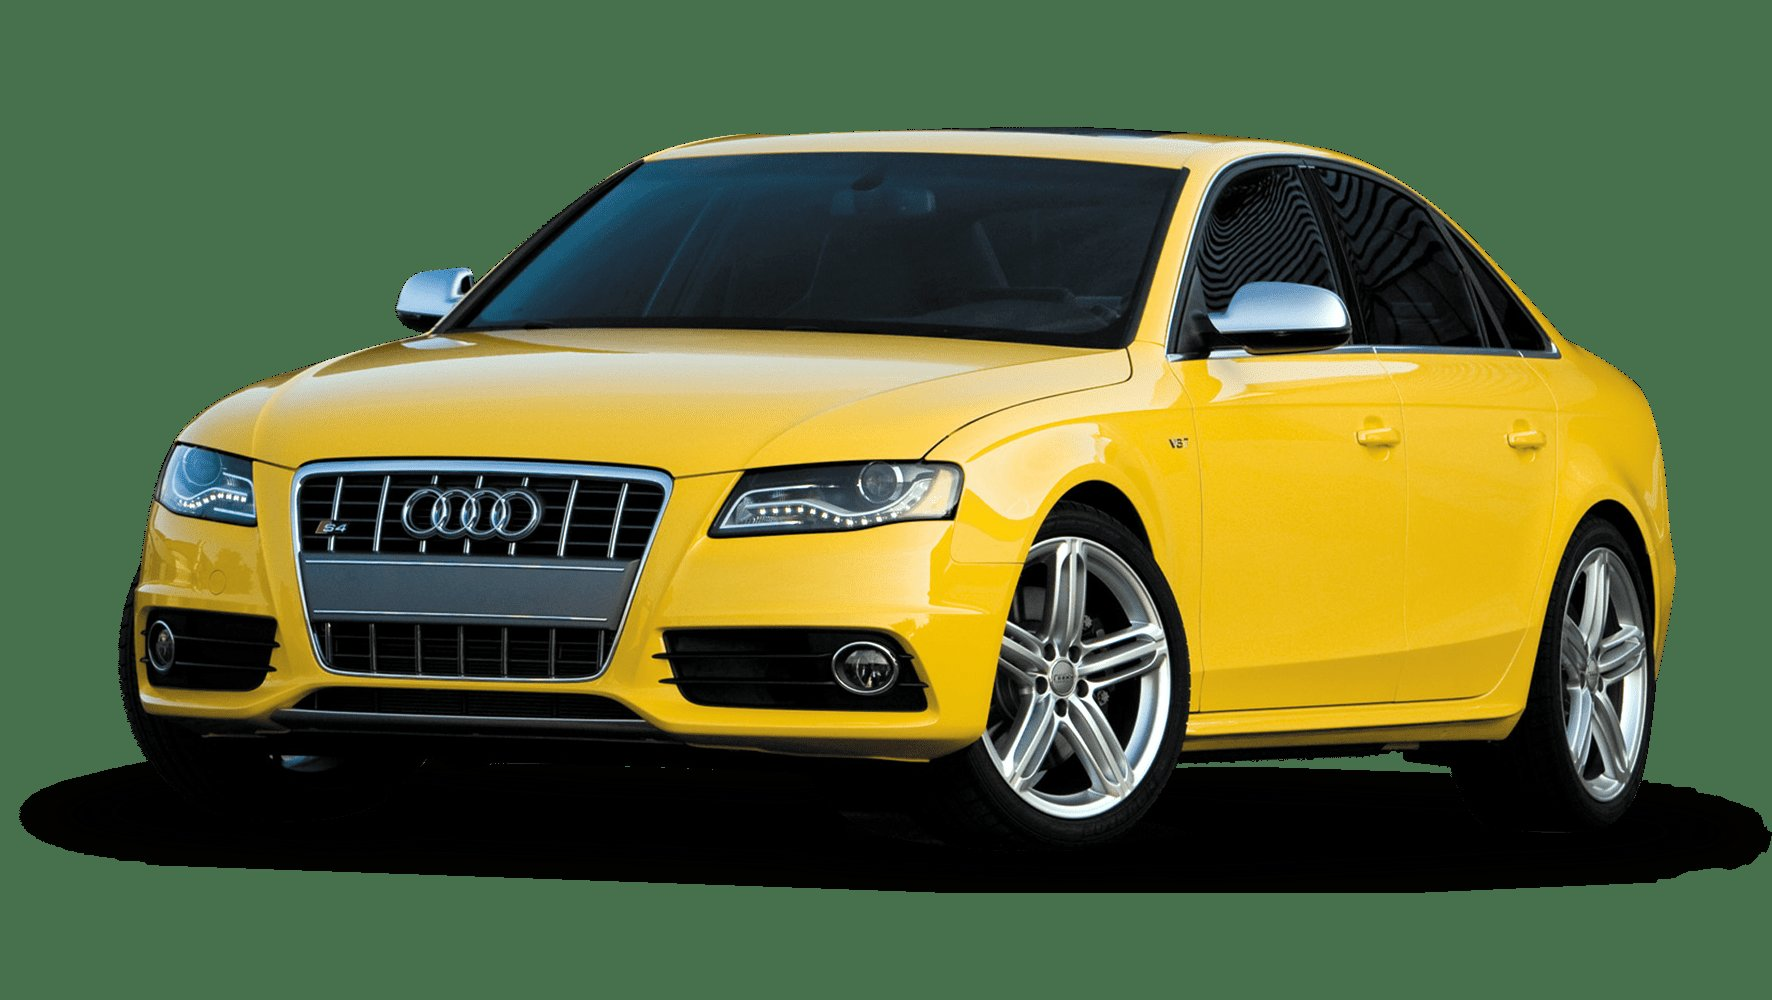 Latest Yellow Audi Car Png Image Pngpix Free Download